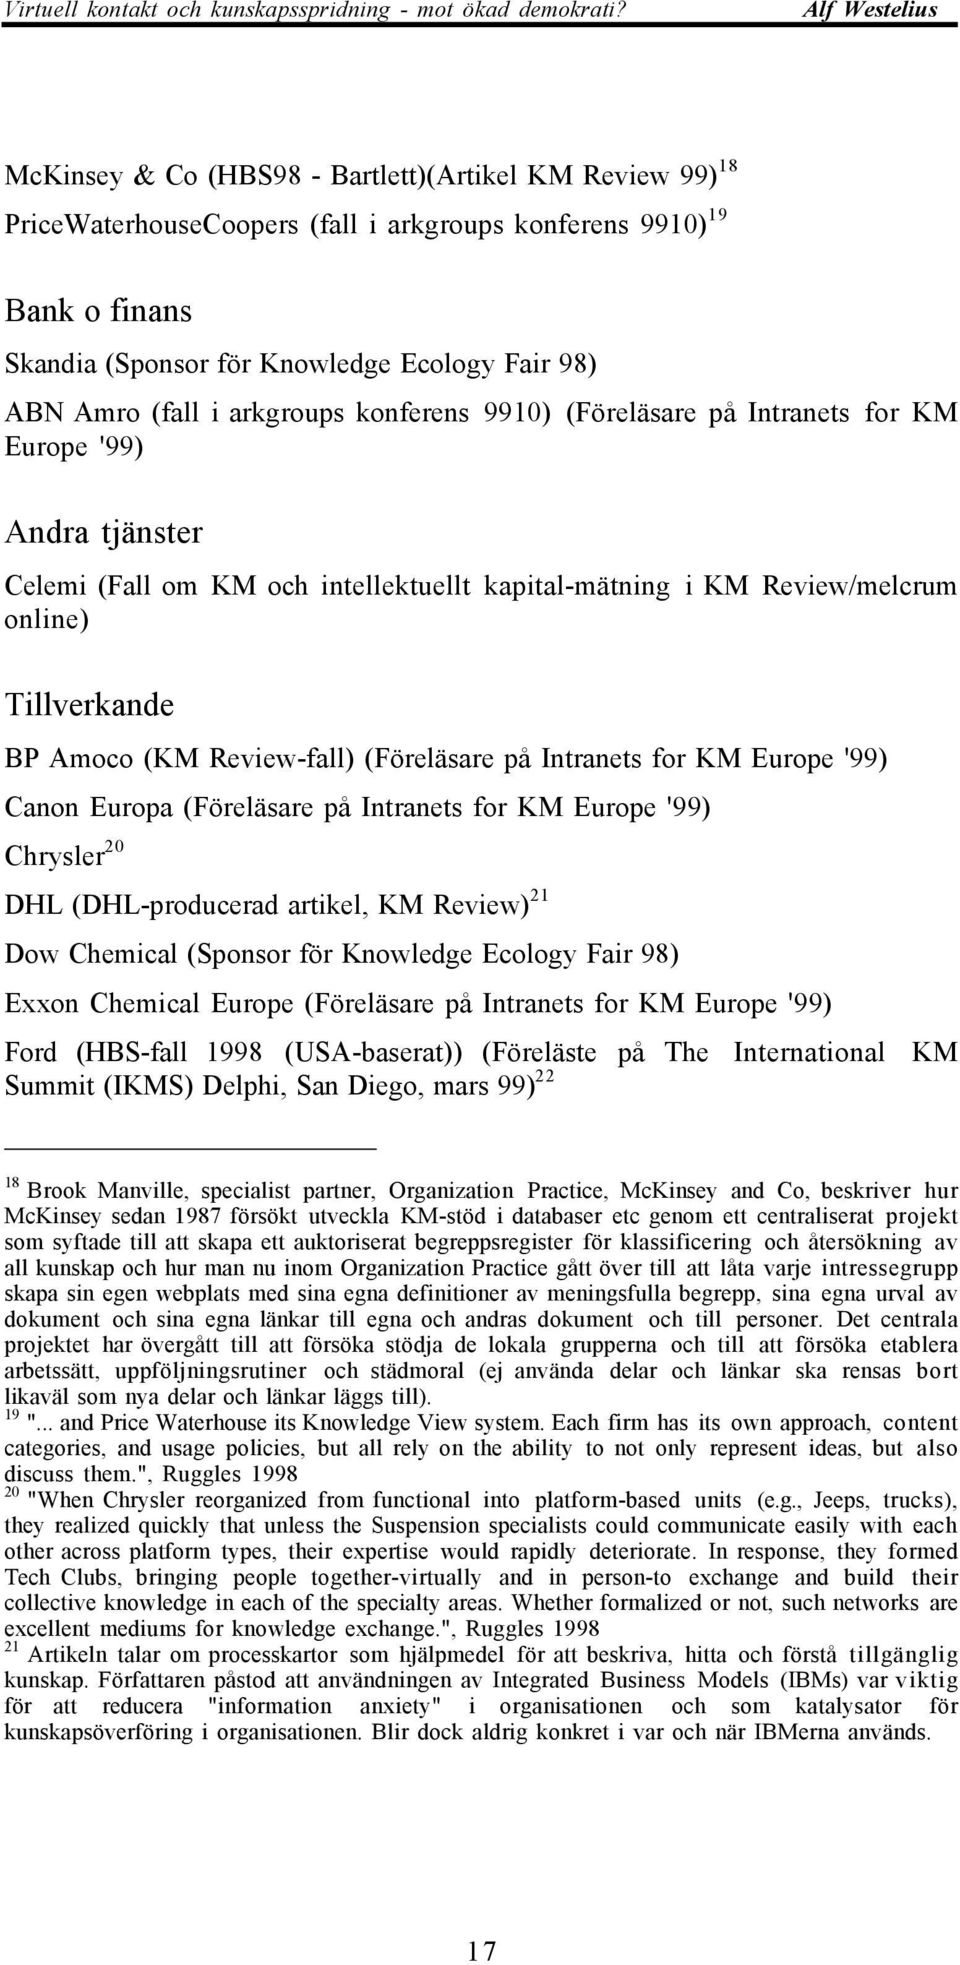 Review-fall) (FšrelŠsare pœ Intranets for KM Europe '99) Canon Europa (FšrelŠsare pœ Intranets for KM Europe '99) Chrysler 20 DHL (DHL-producerad artikel, KM Review) 21 Dow Chemical (Sponsor fšr